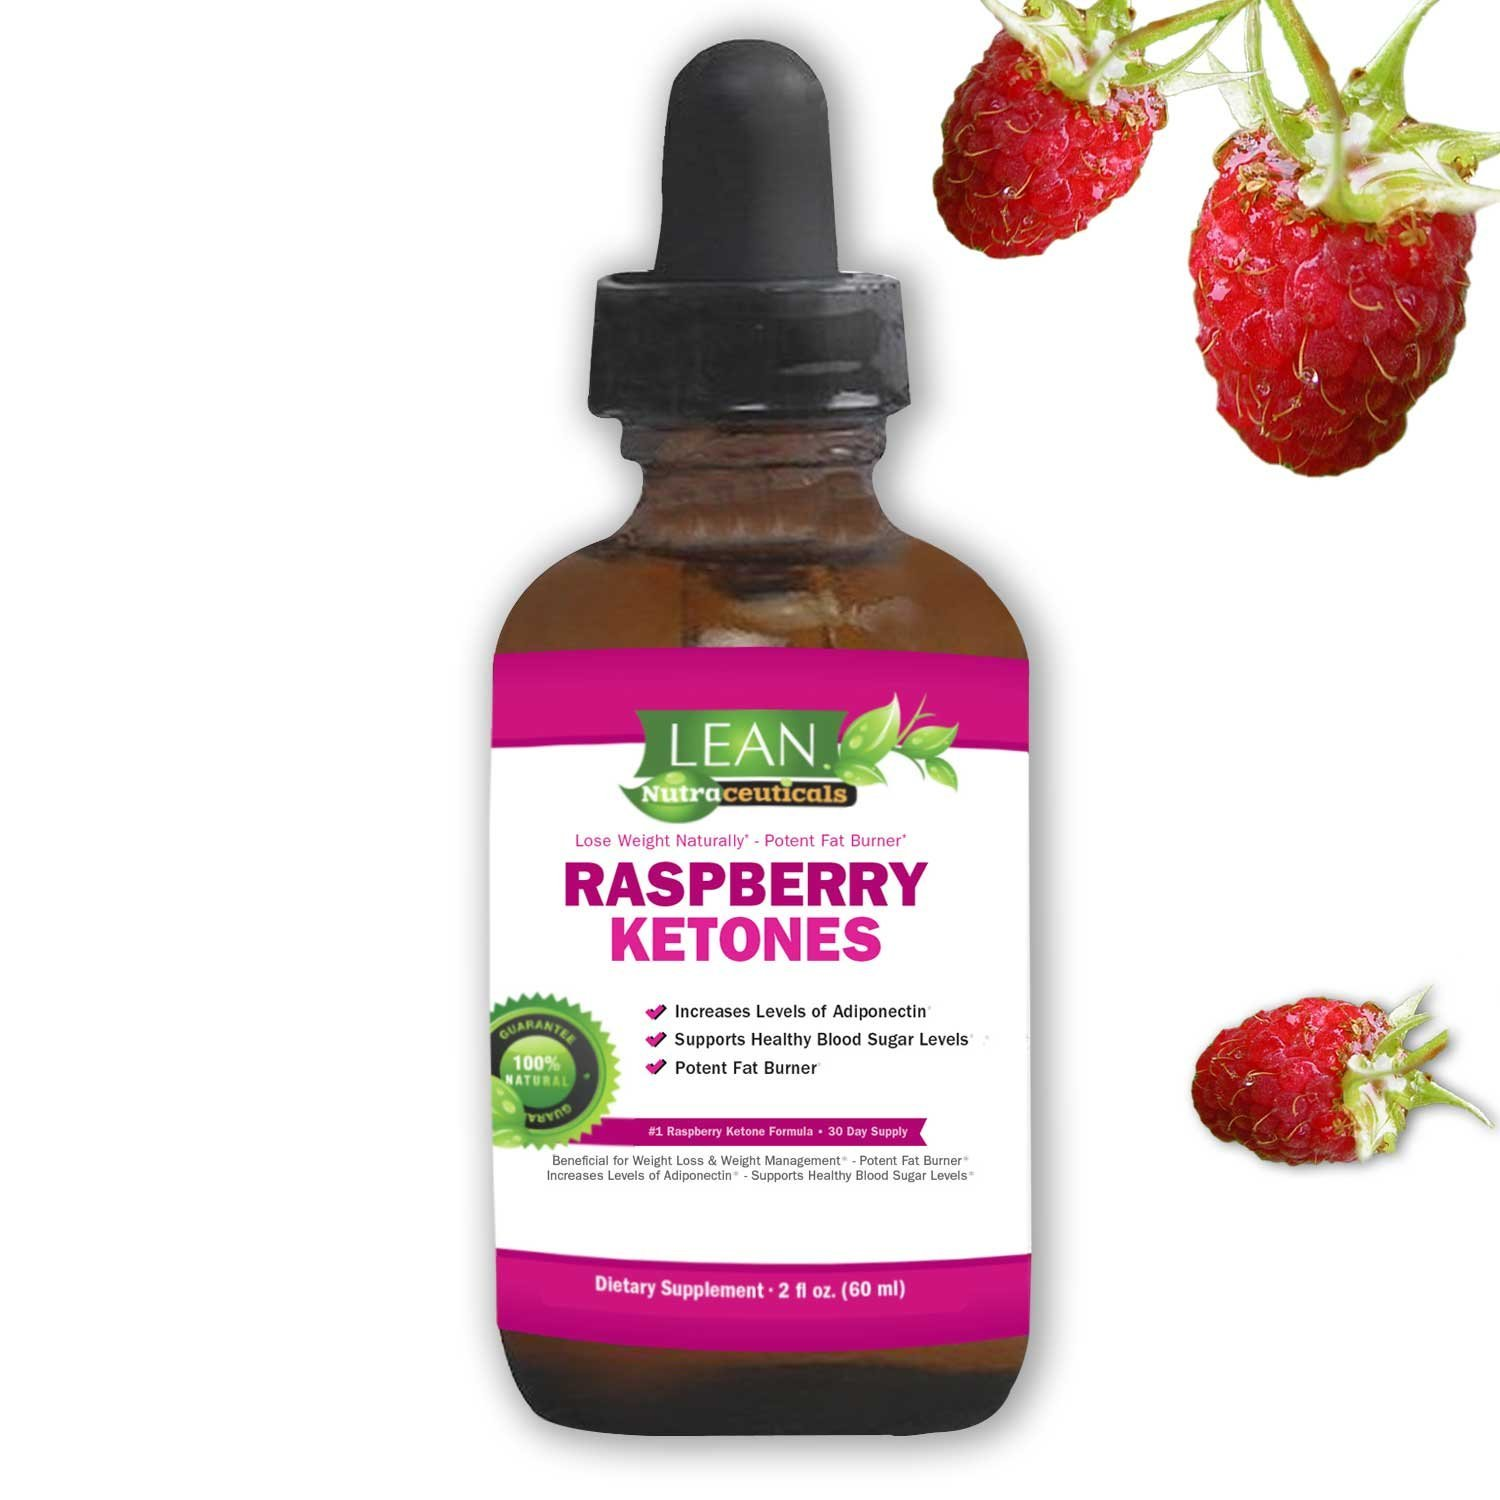 Lean Nutraceuticals Raspberry Ketones Drops for Weight Loss Natural Vegan Liquid Extract Formula Plus African Mango, Acai, Green Tea, Fast Absorption Compared to Capsules 60 ml by LEAN Nutraceuticals